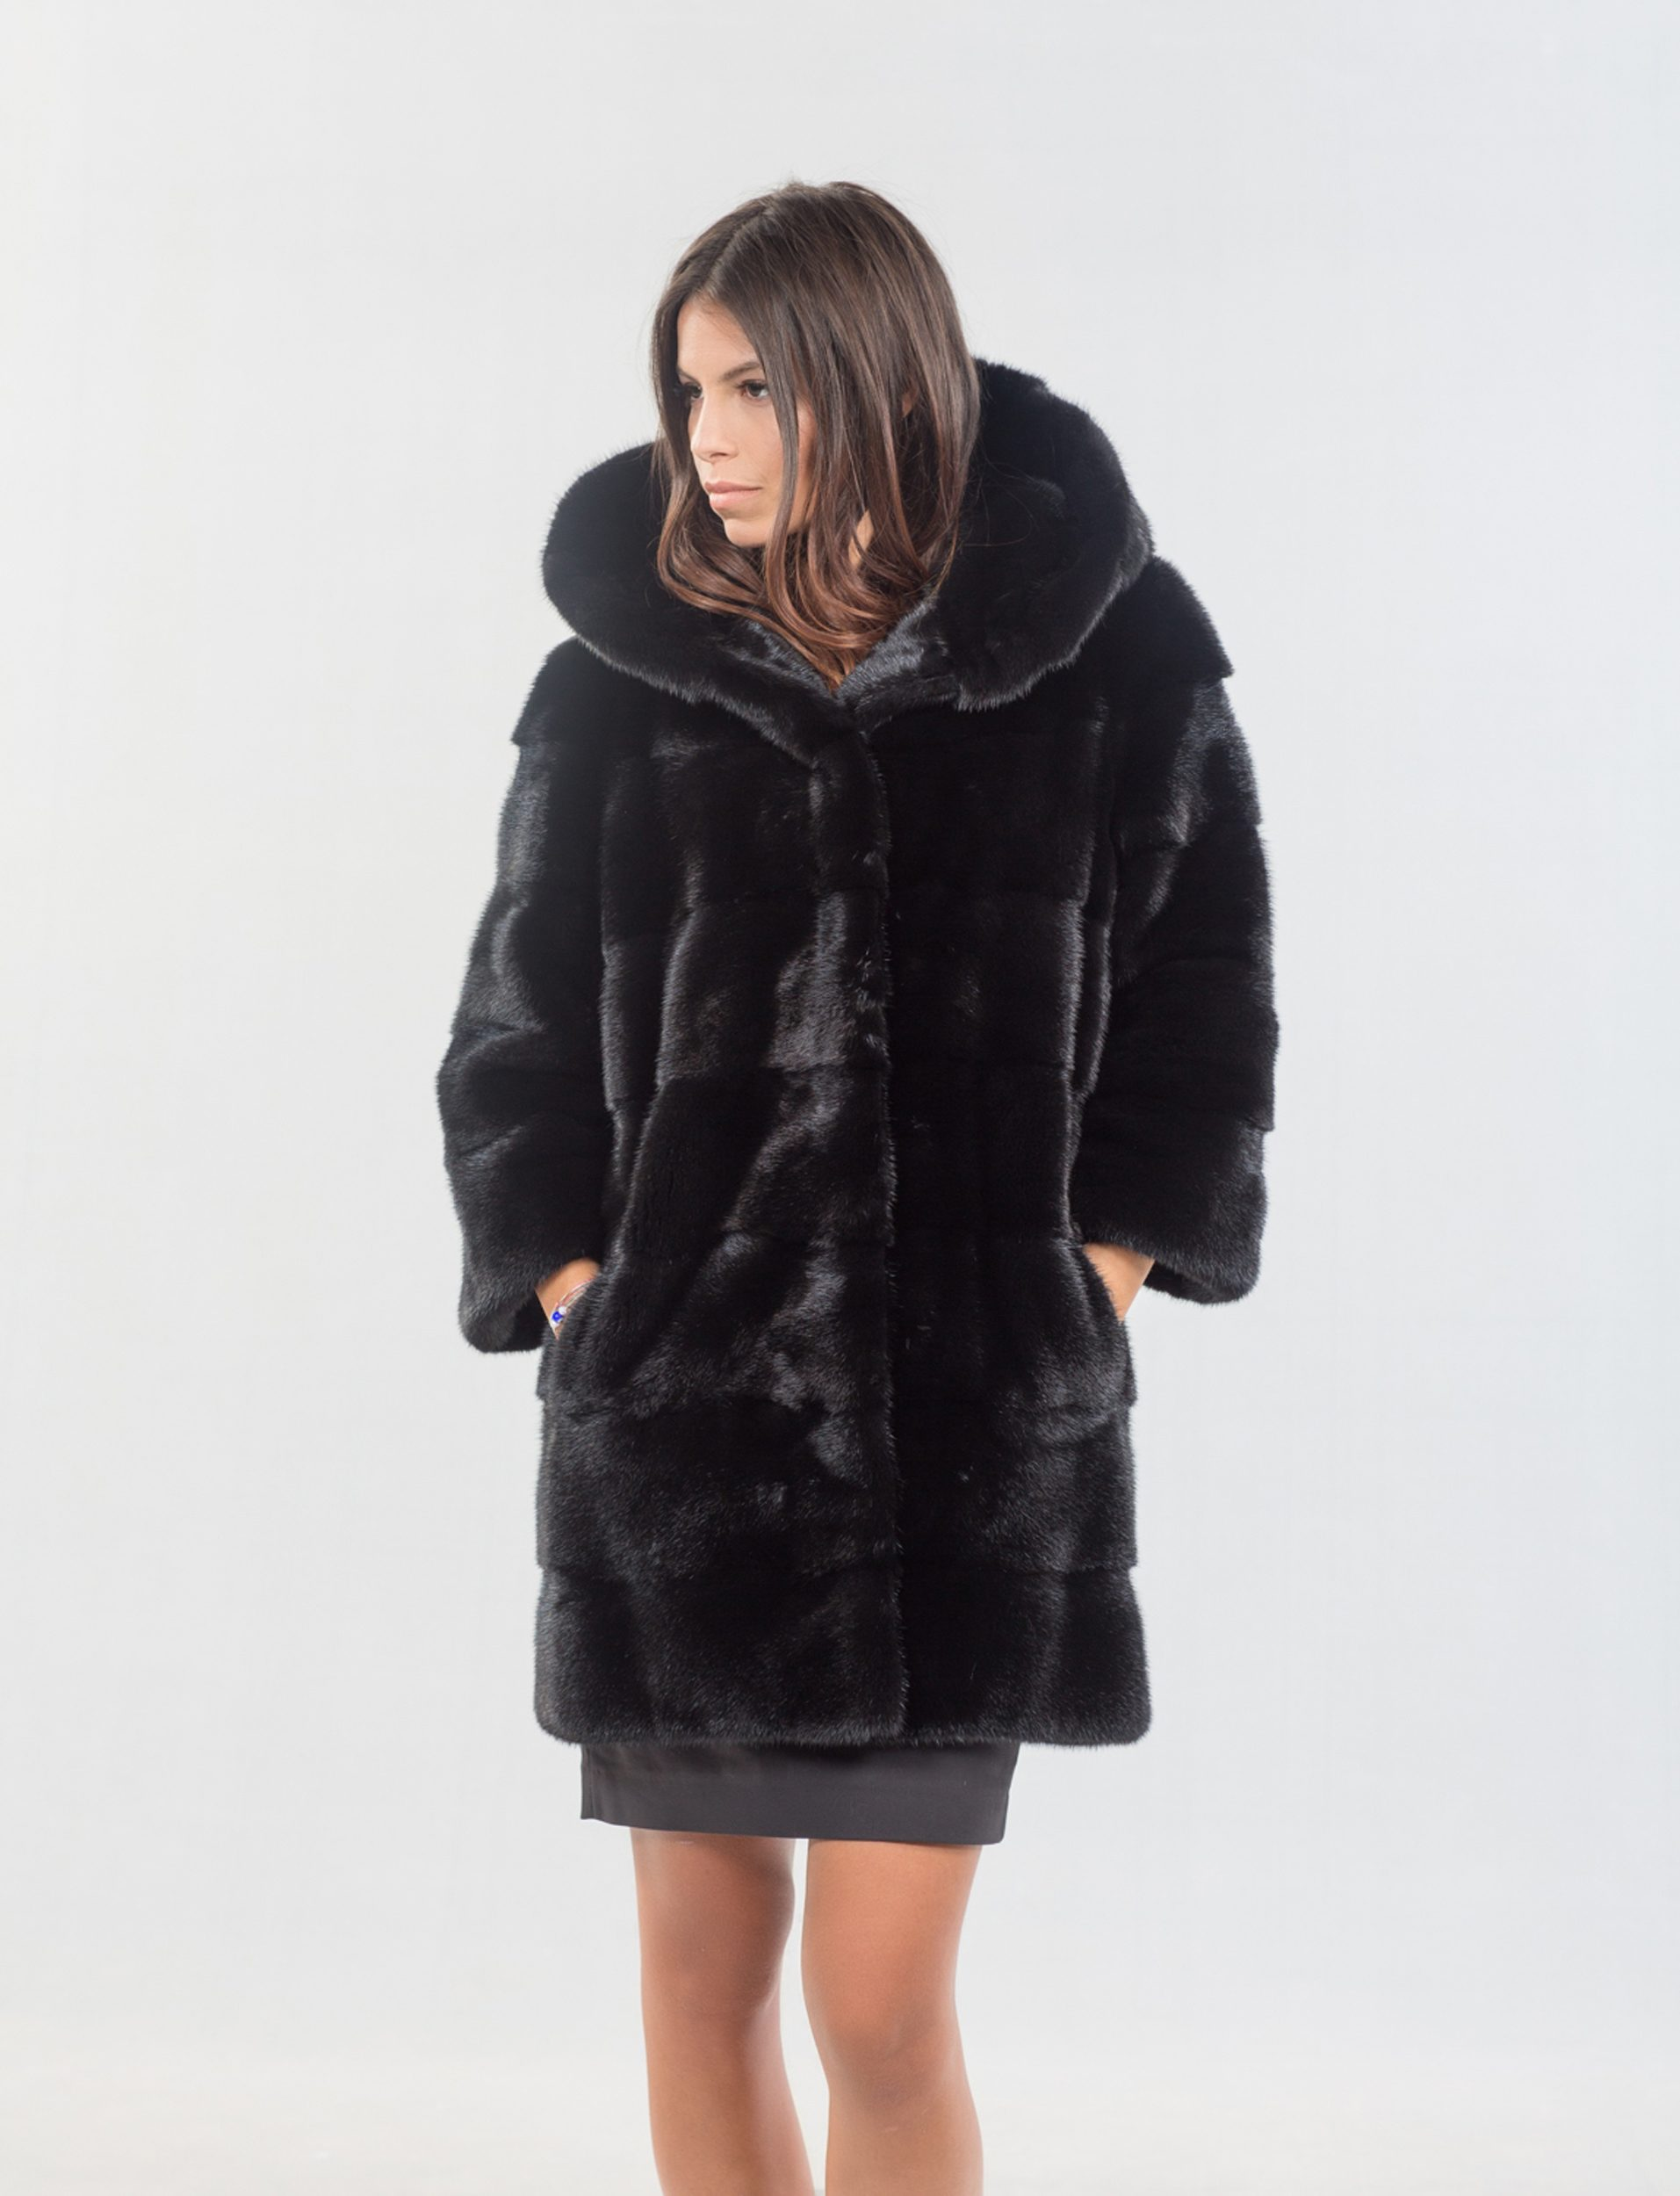 3157ca946a Black Mink Coat With Hood. 100% Real Fur Coats and Accessories.